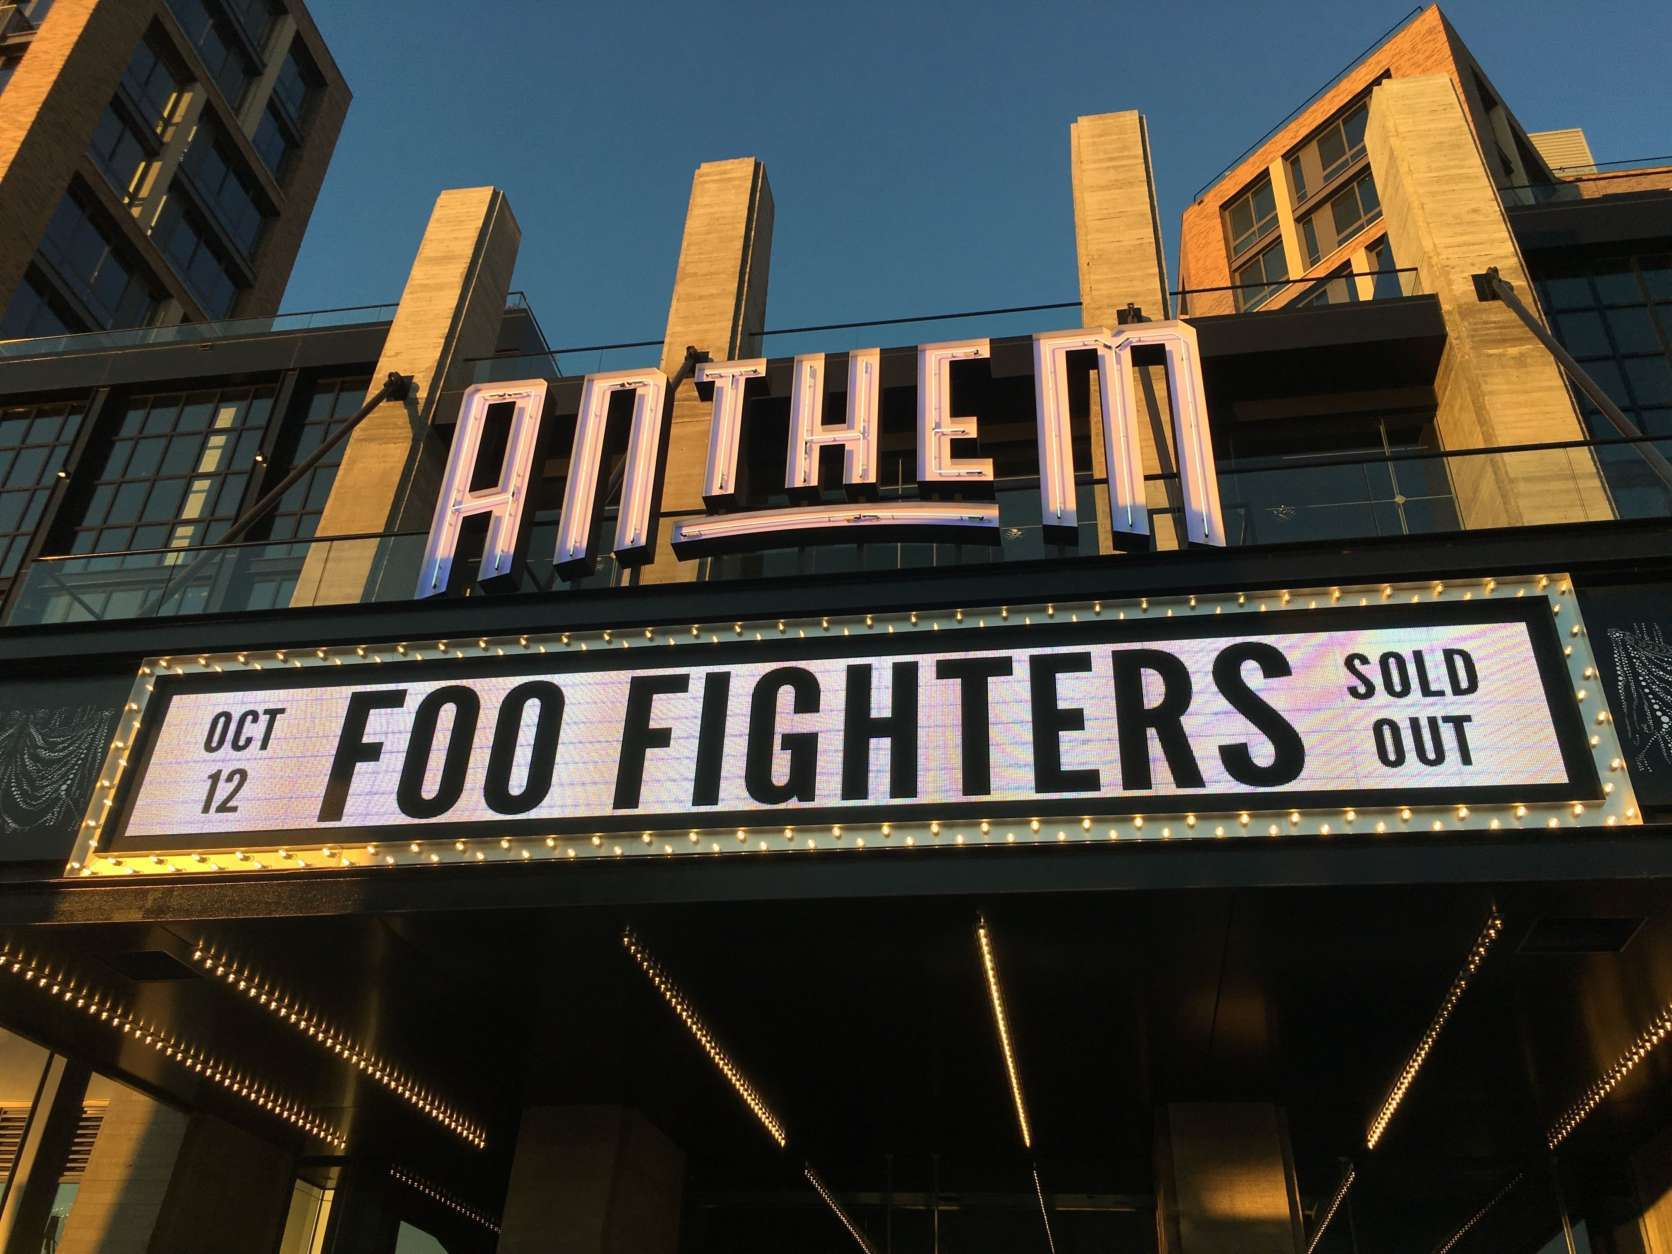 The Anthem marquee shows the opening night act, The Foo Fighters. (Audrey Fix Schaefer)